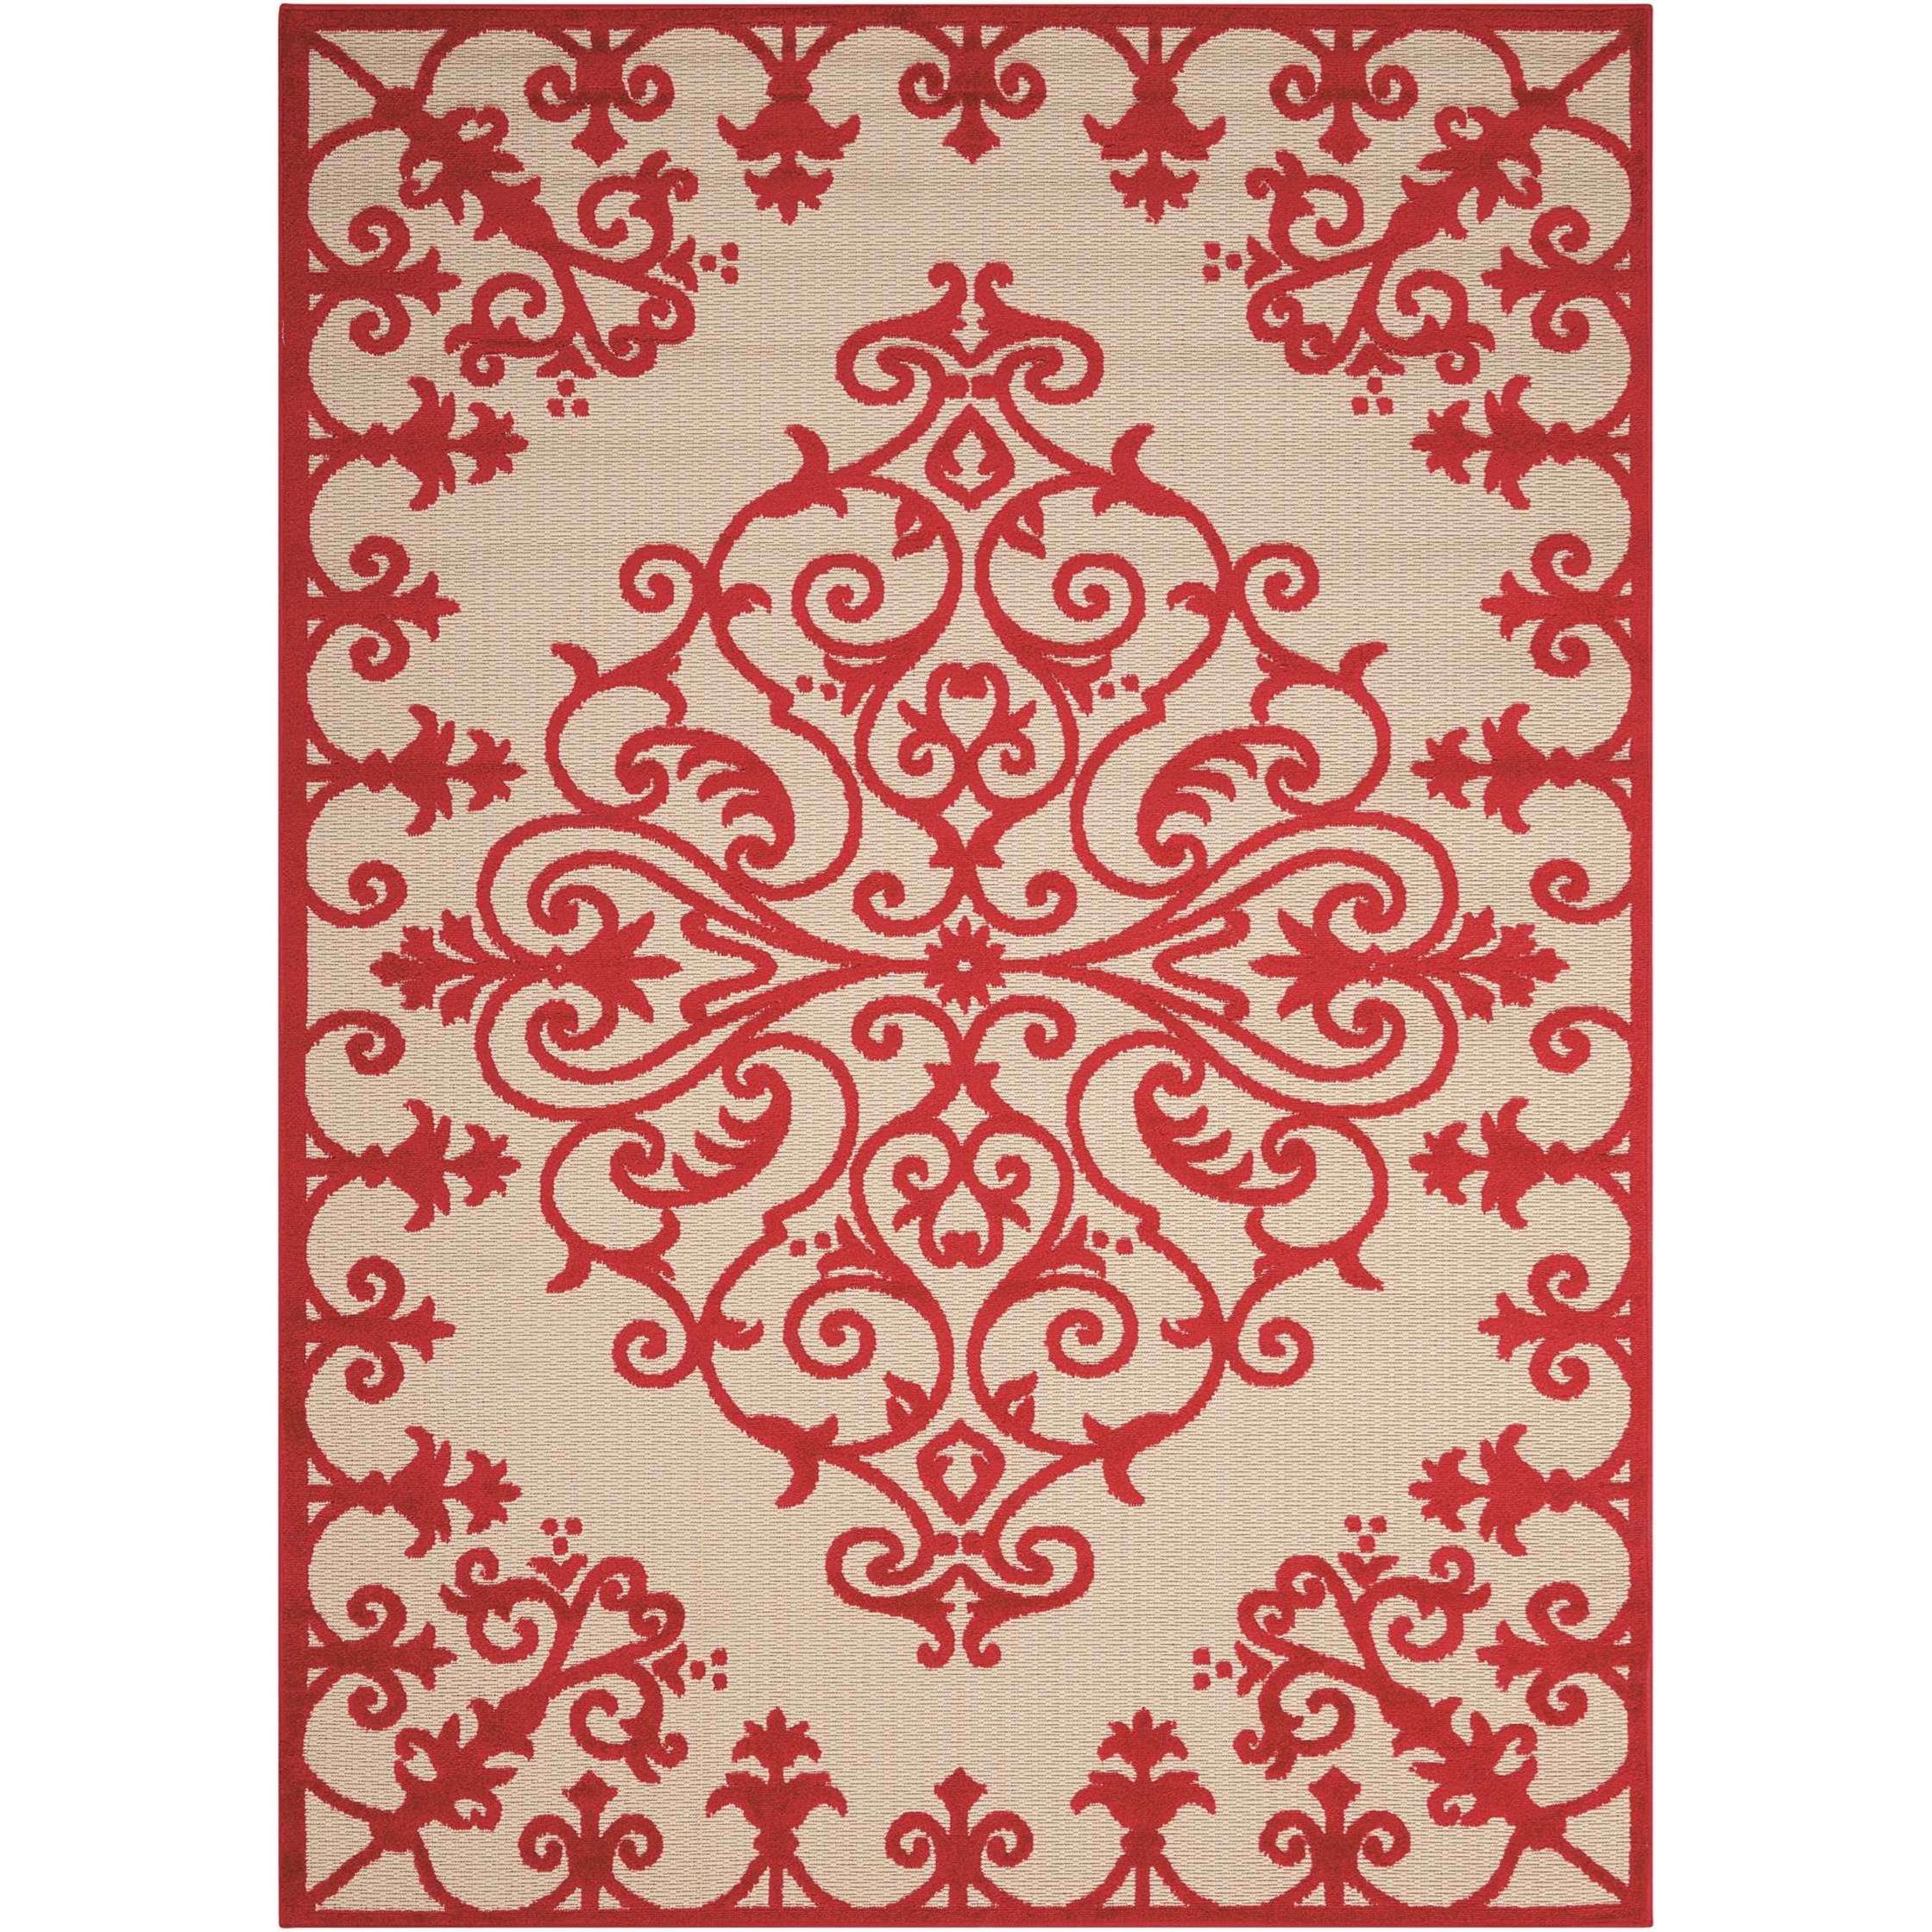 "Aloha 7'10"" x 10'6"" Red Rectangle Rug by Nourison at Home Collections Furniture"